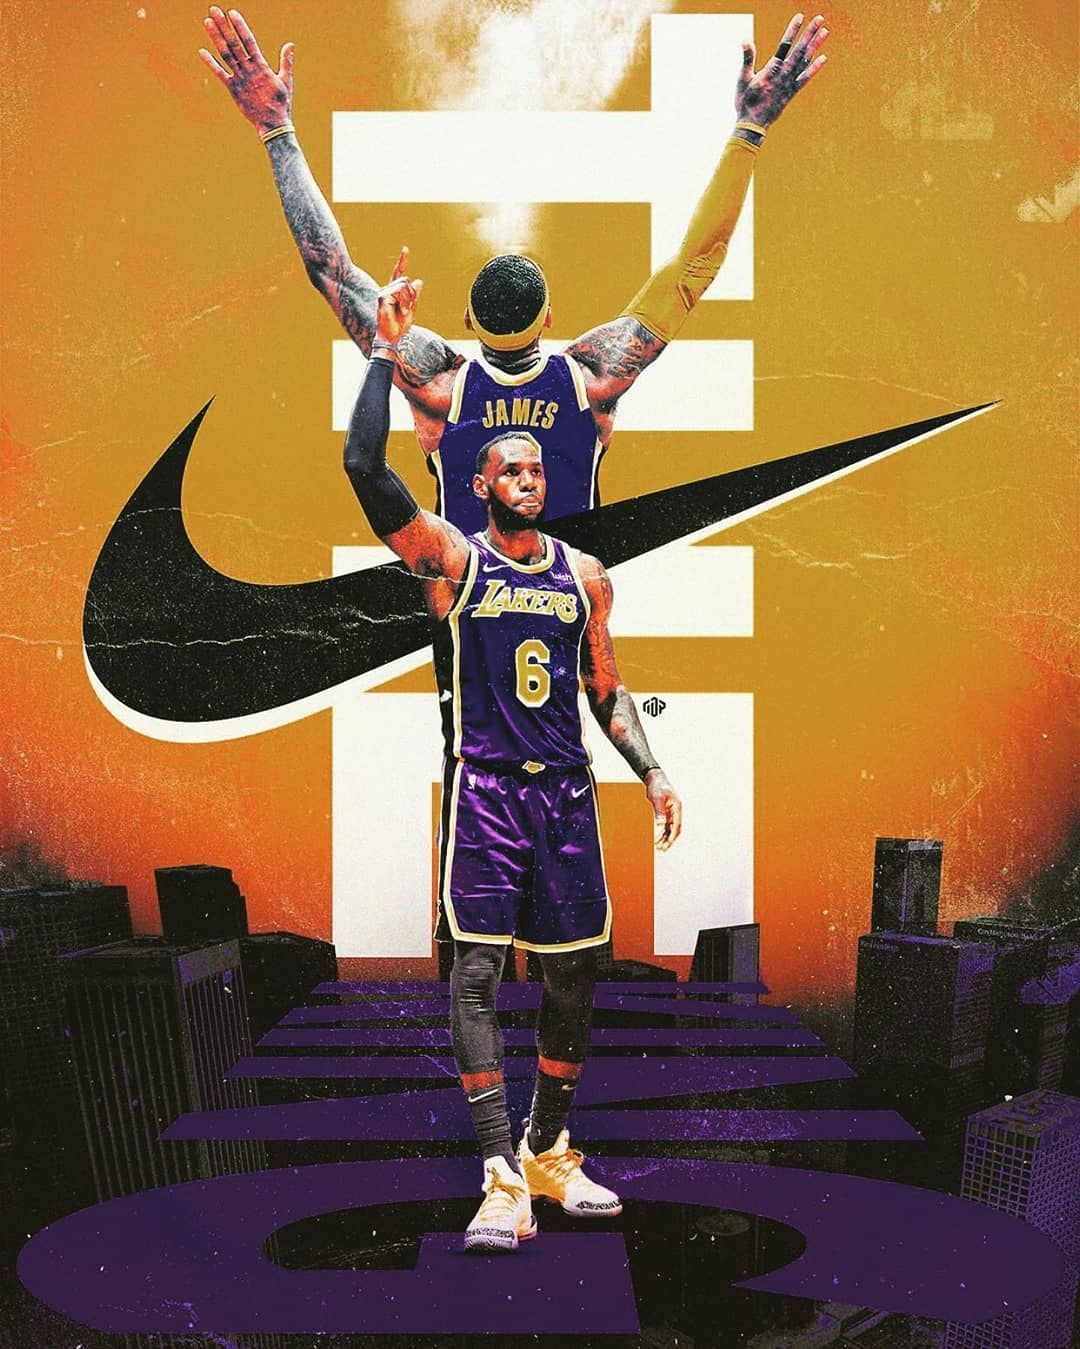 Pin By Ty Asia Silvera On Hypebeast Wallpaper In 2020 Lebron James Basketball Players Nba Lebron James Wallpapers